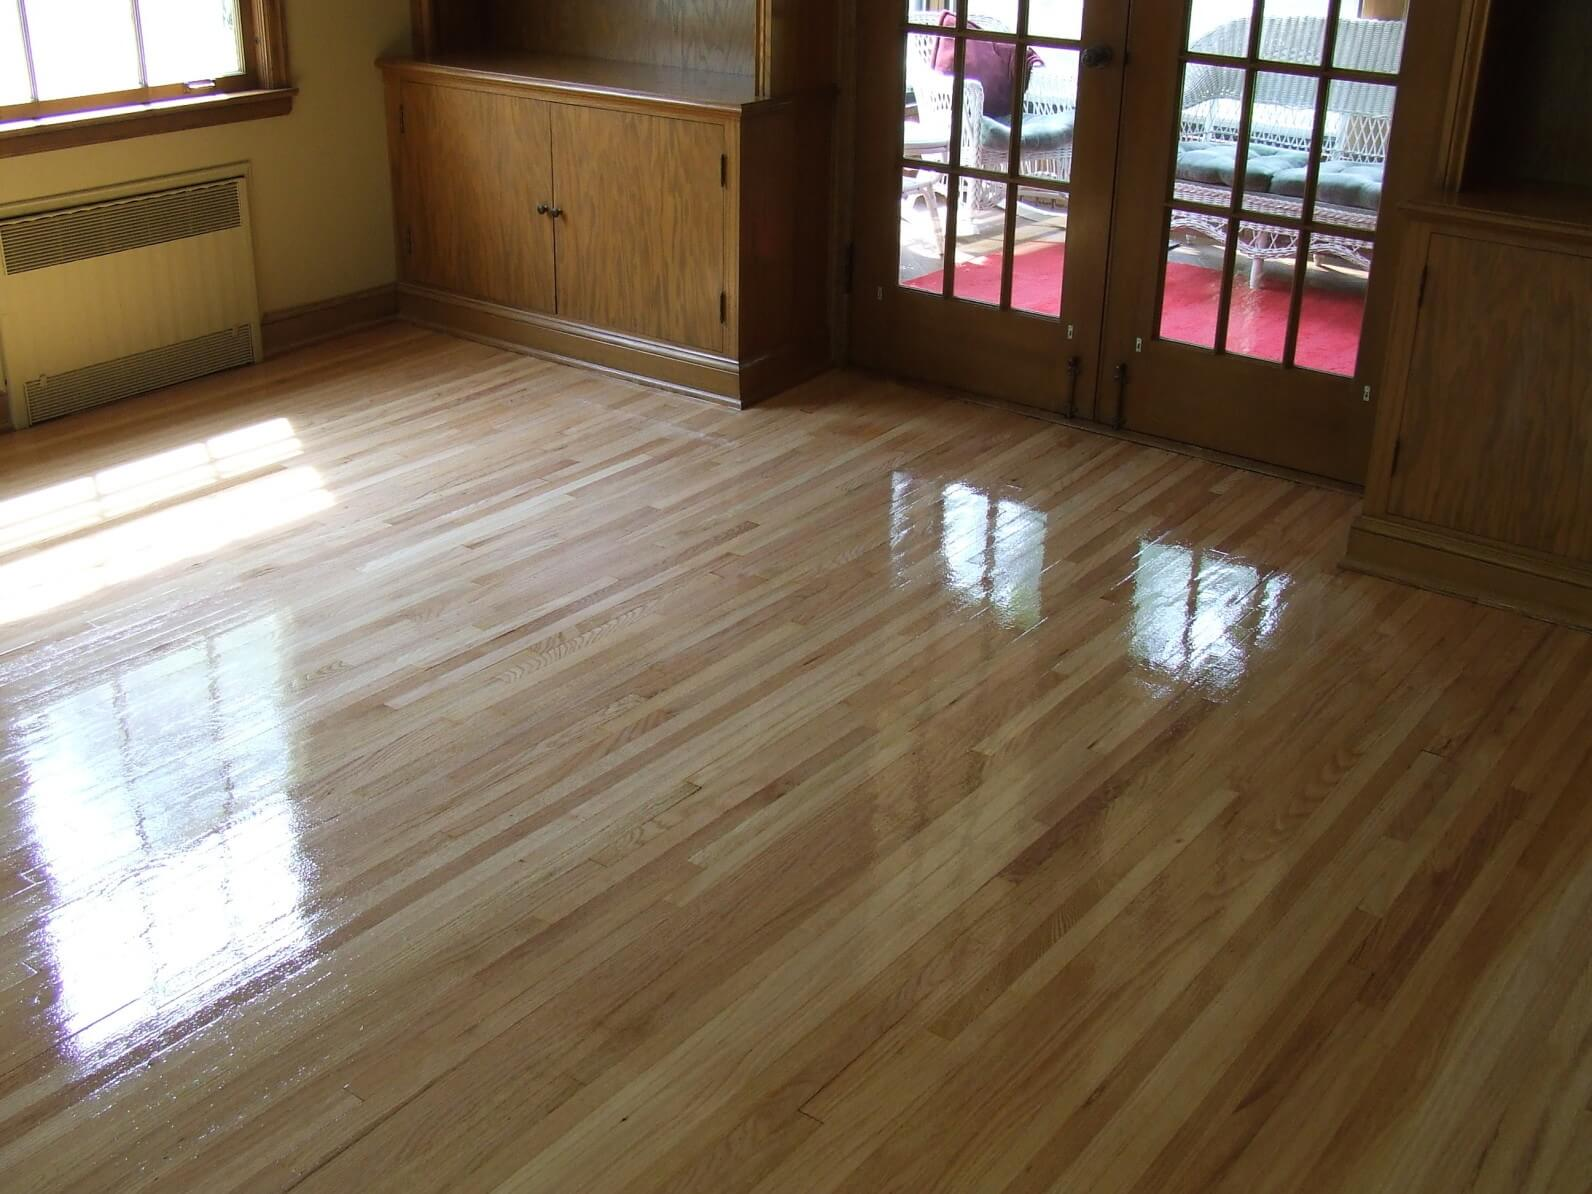 Linoleum Types Review, Description, Usage Advice. Glossy effect in the renovated room